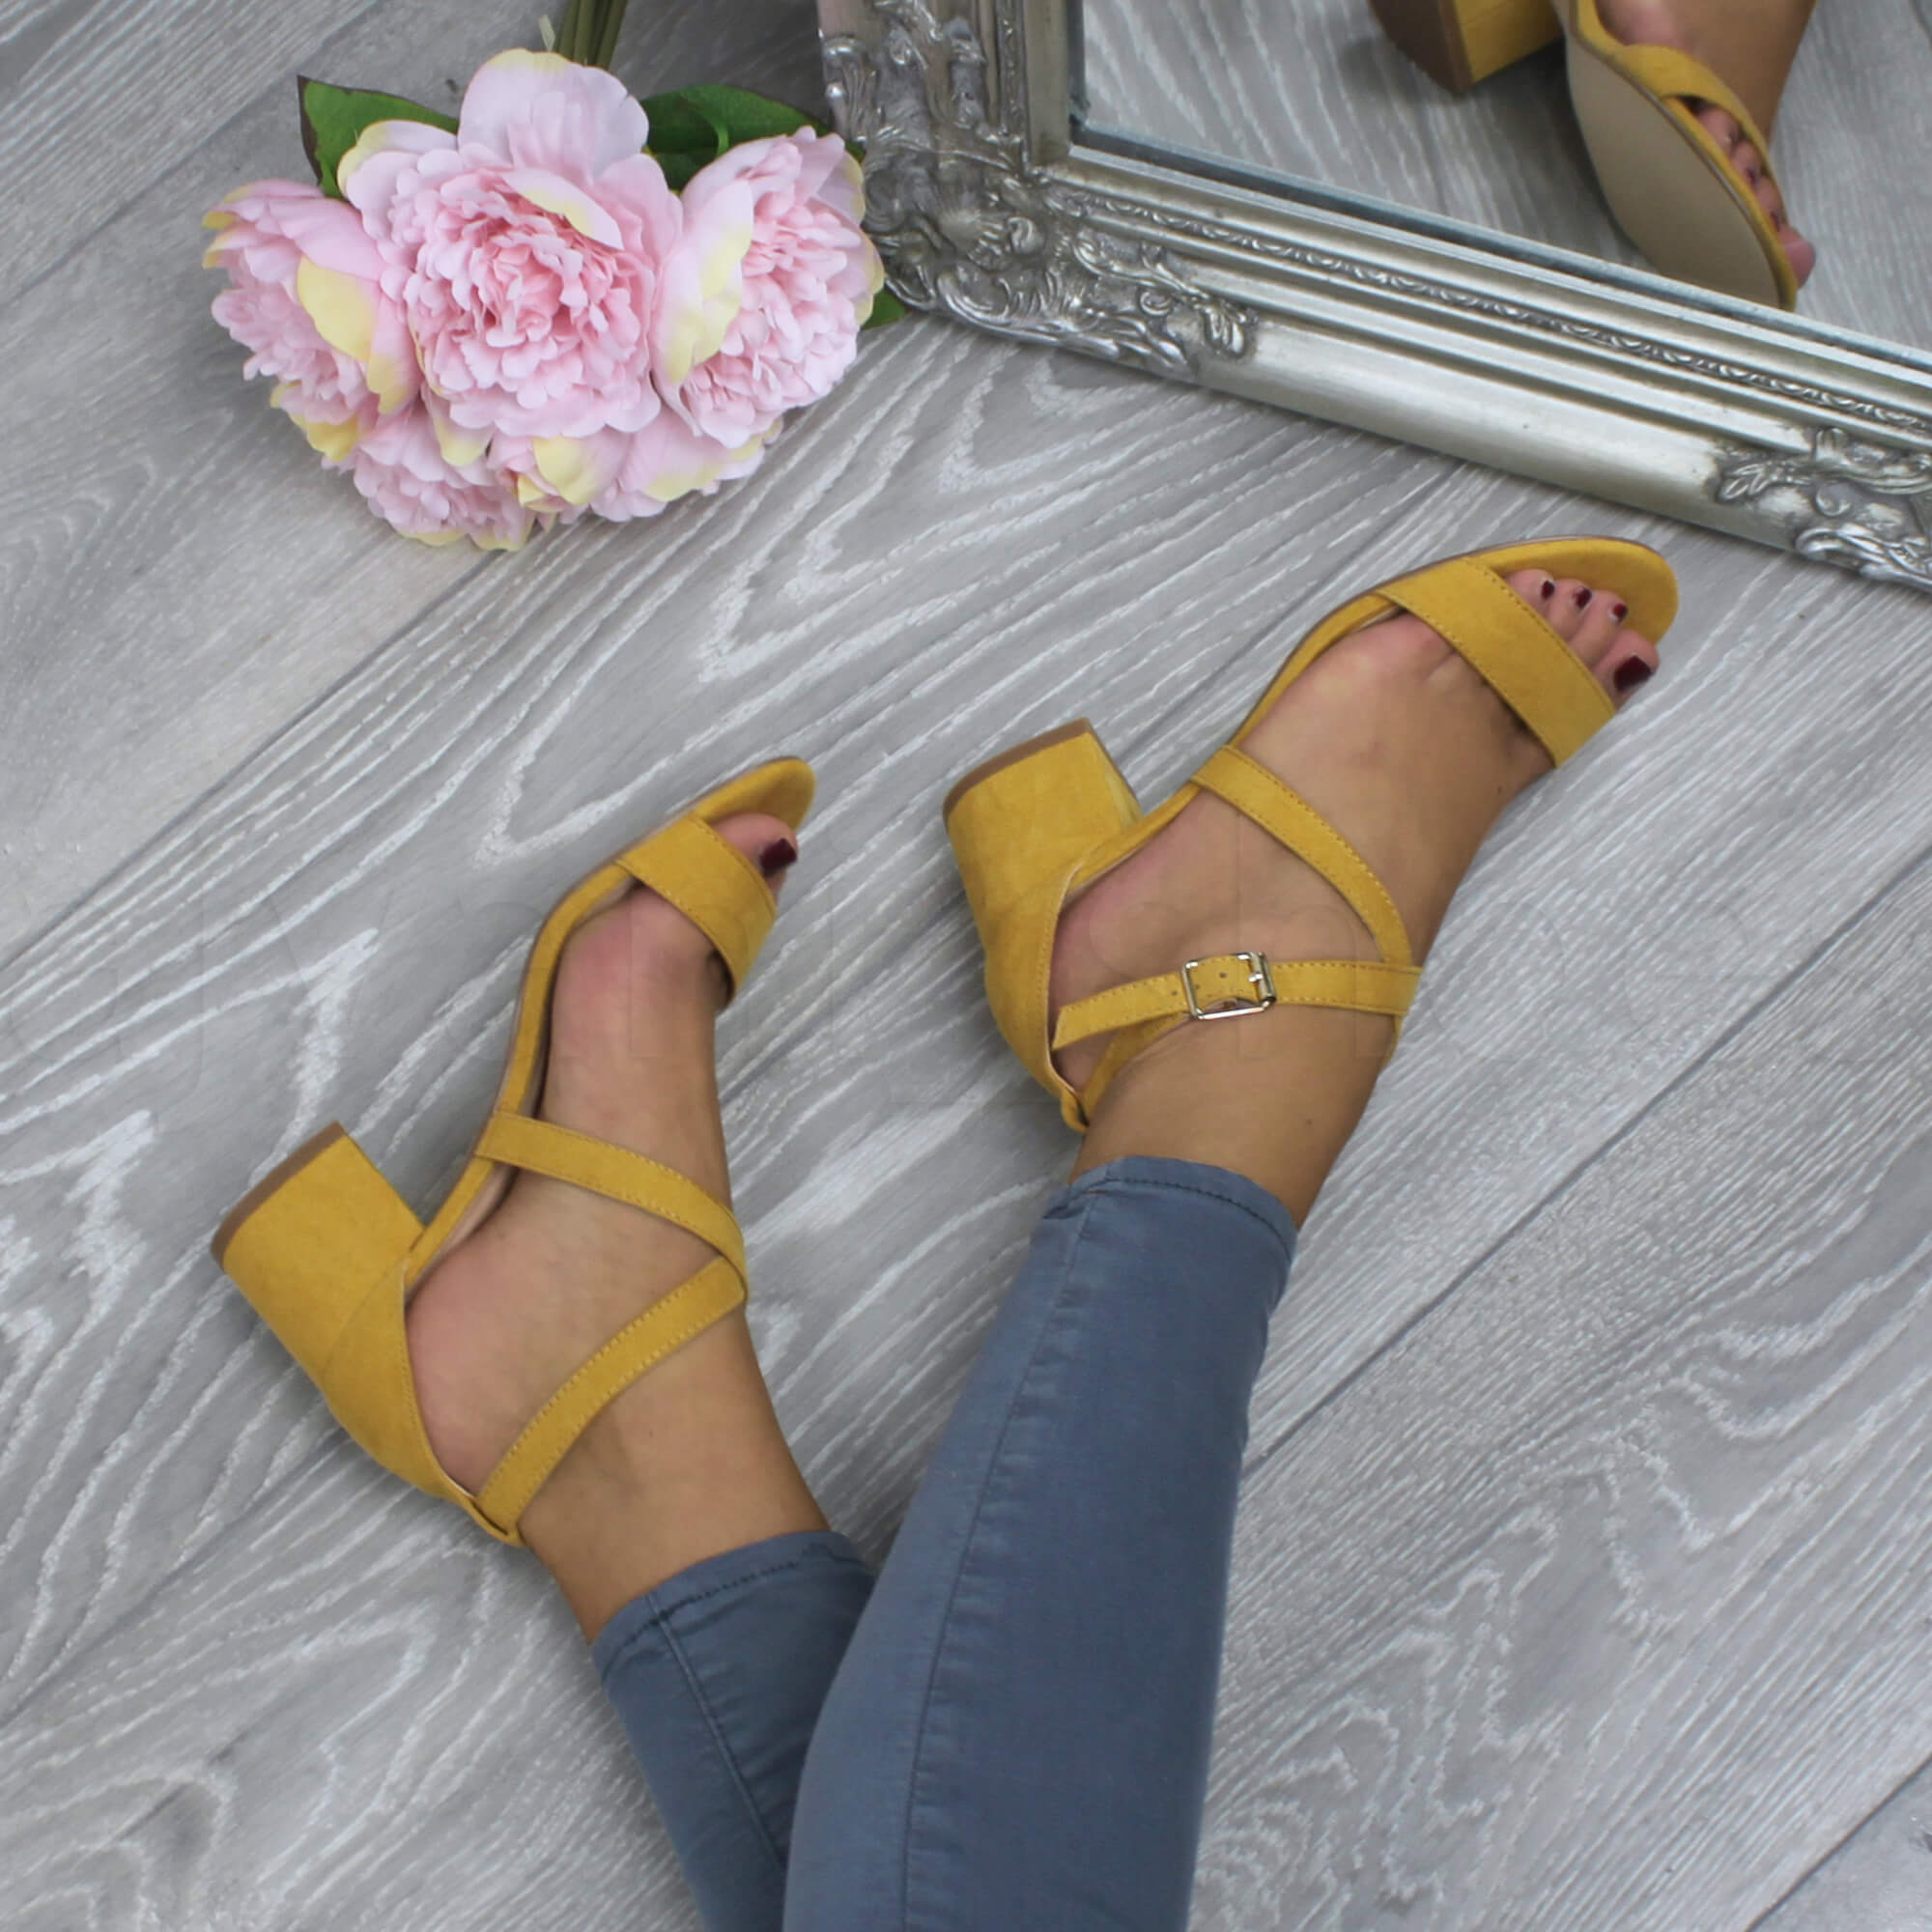 WOMENS-LADIES-MID-LOW-BLOCK-HEEL-CROSS-STRAPS-PARTY-STRAPPY-SANDALS-SHOES-SIZE thumbnail 45